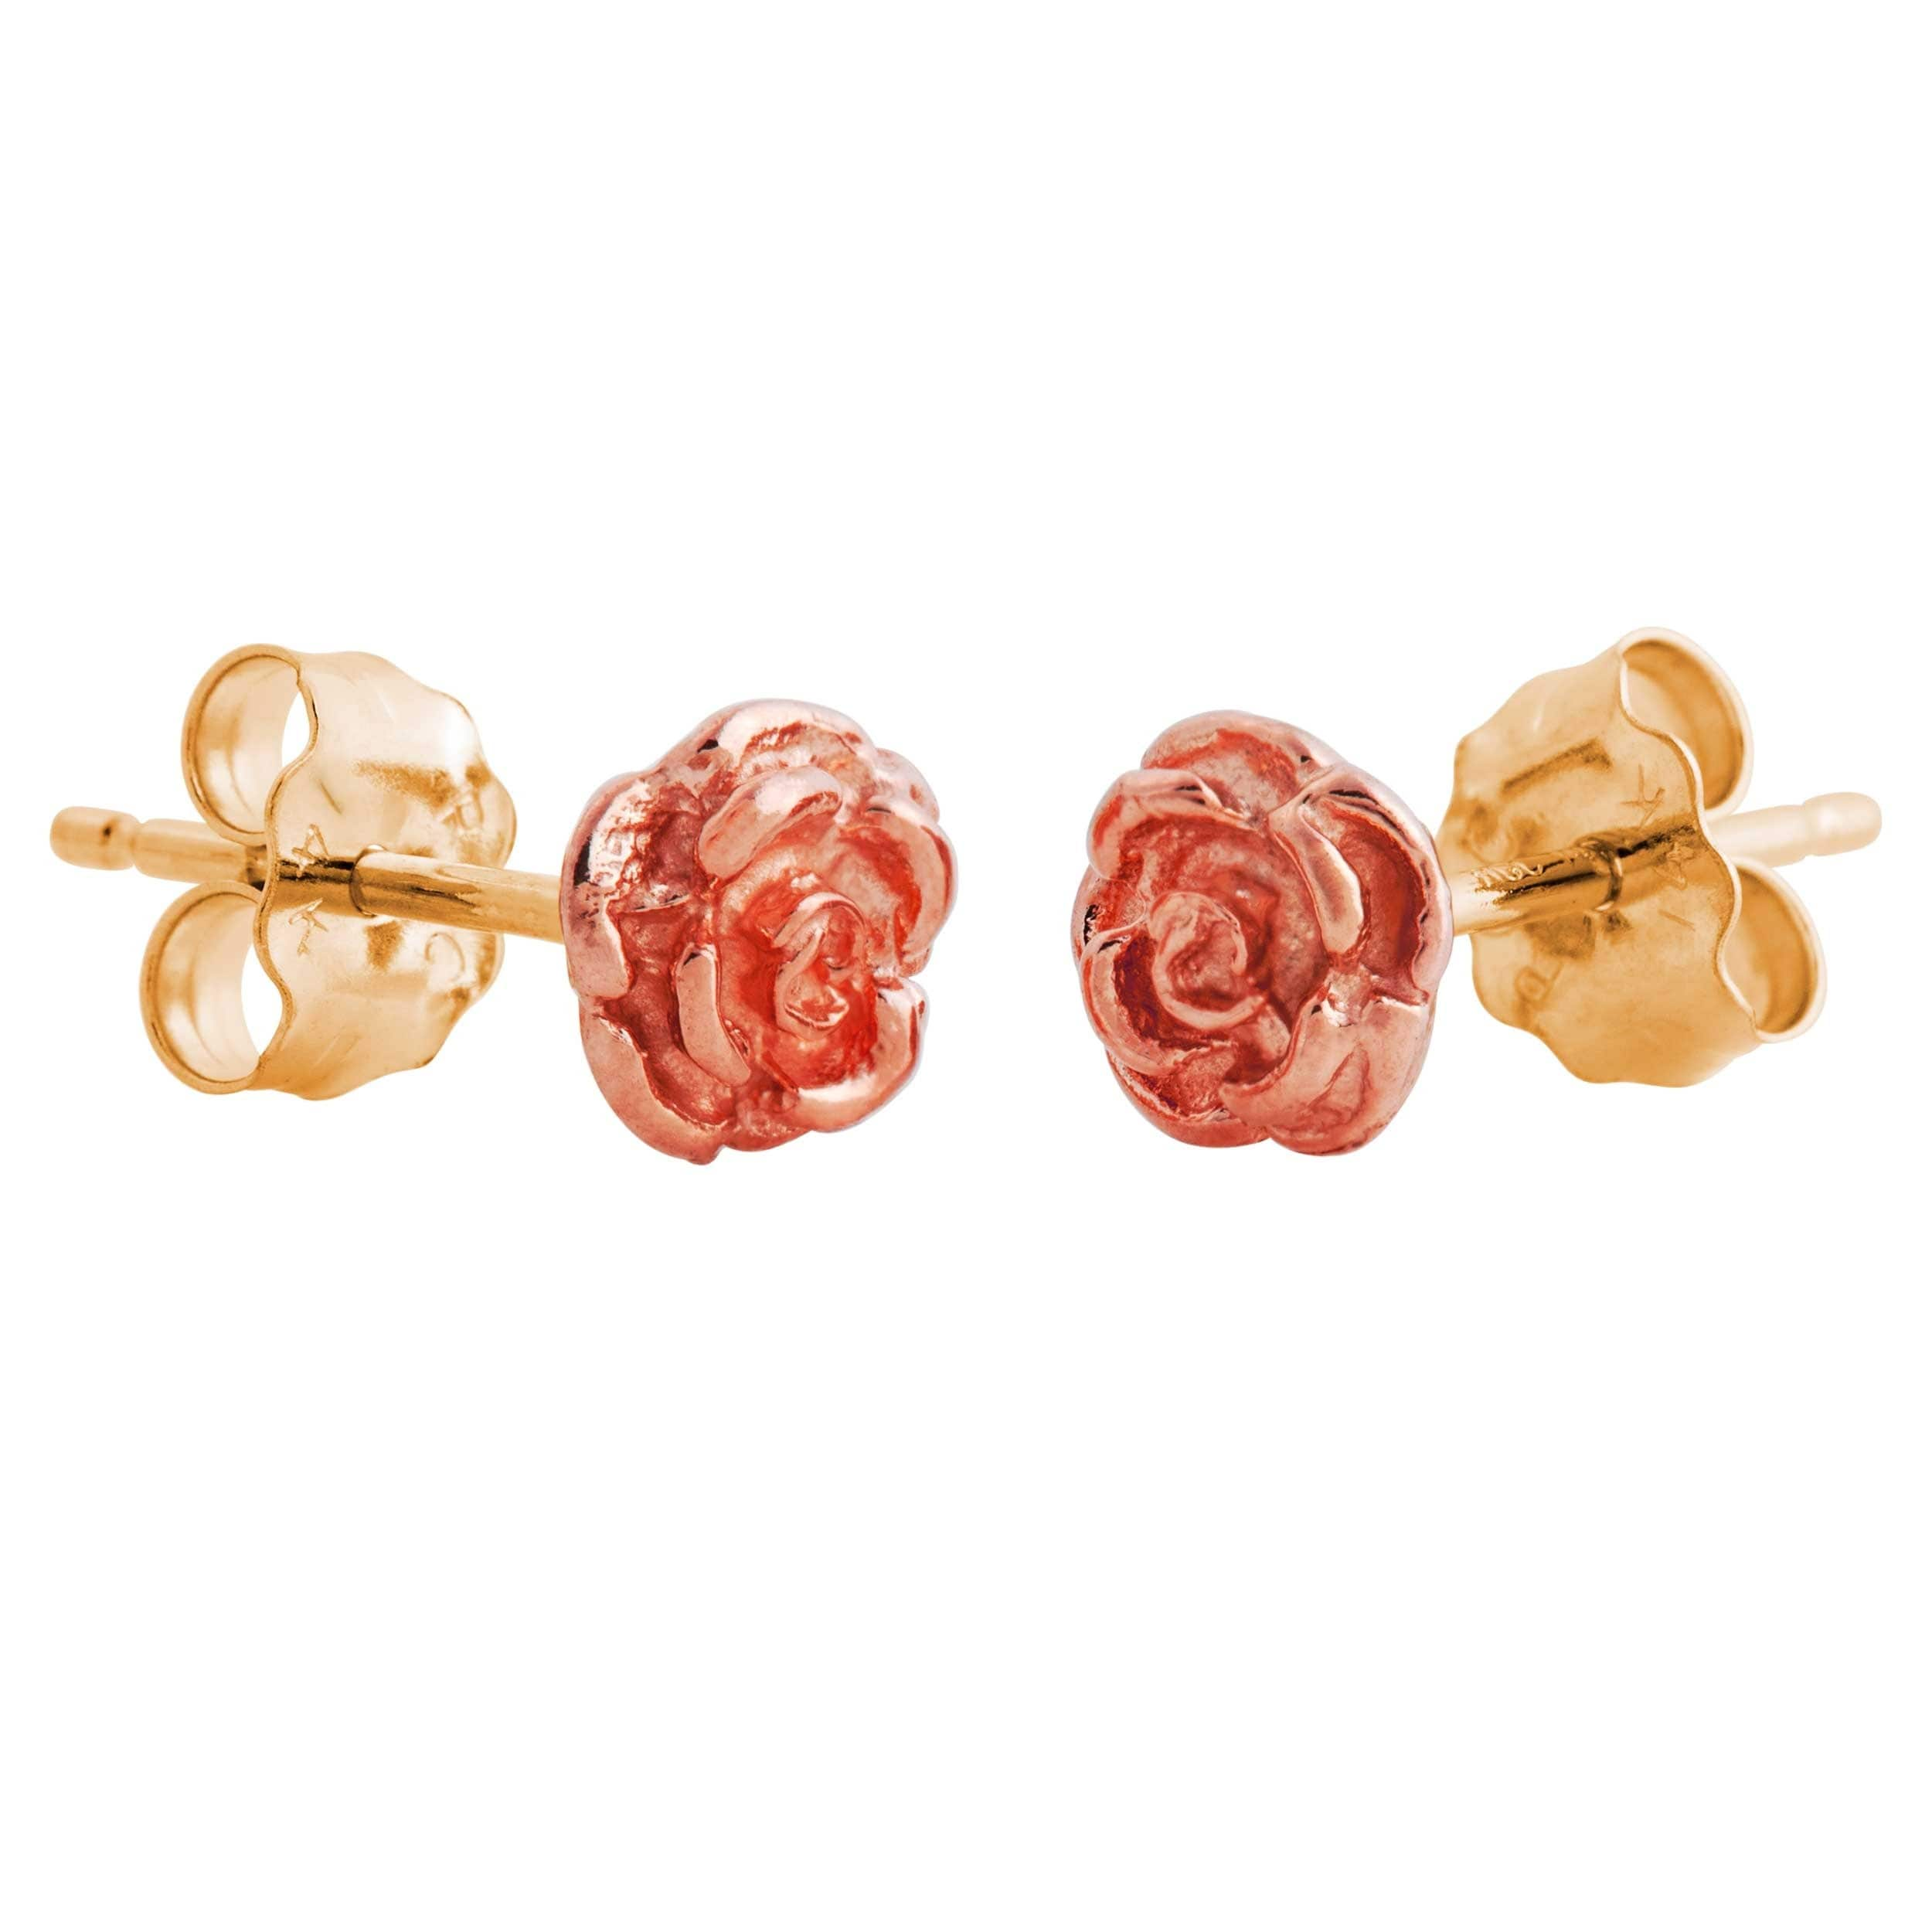 10k Black Hills Gold Rose Earrings Free Shipping Today 933647